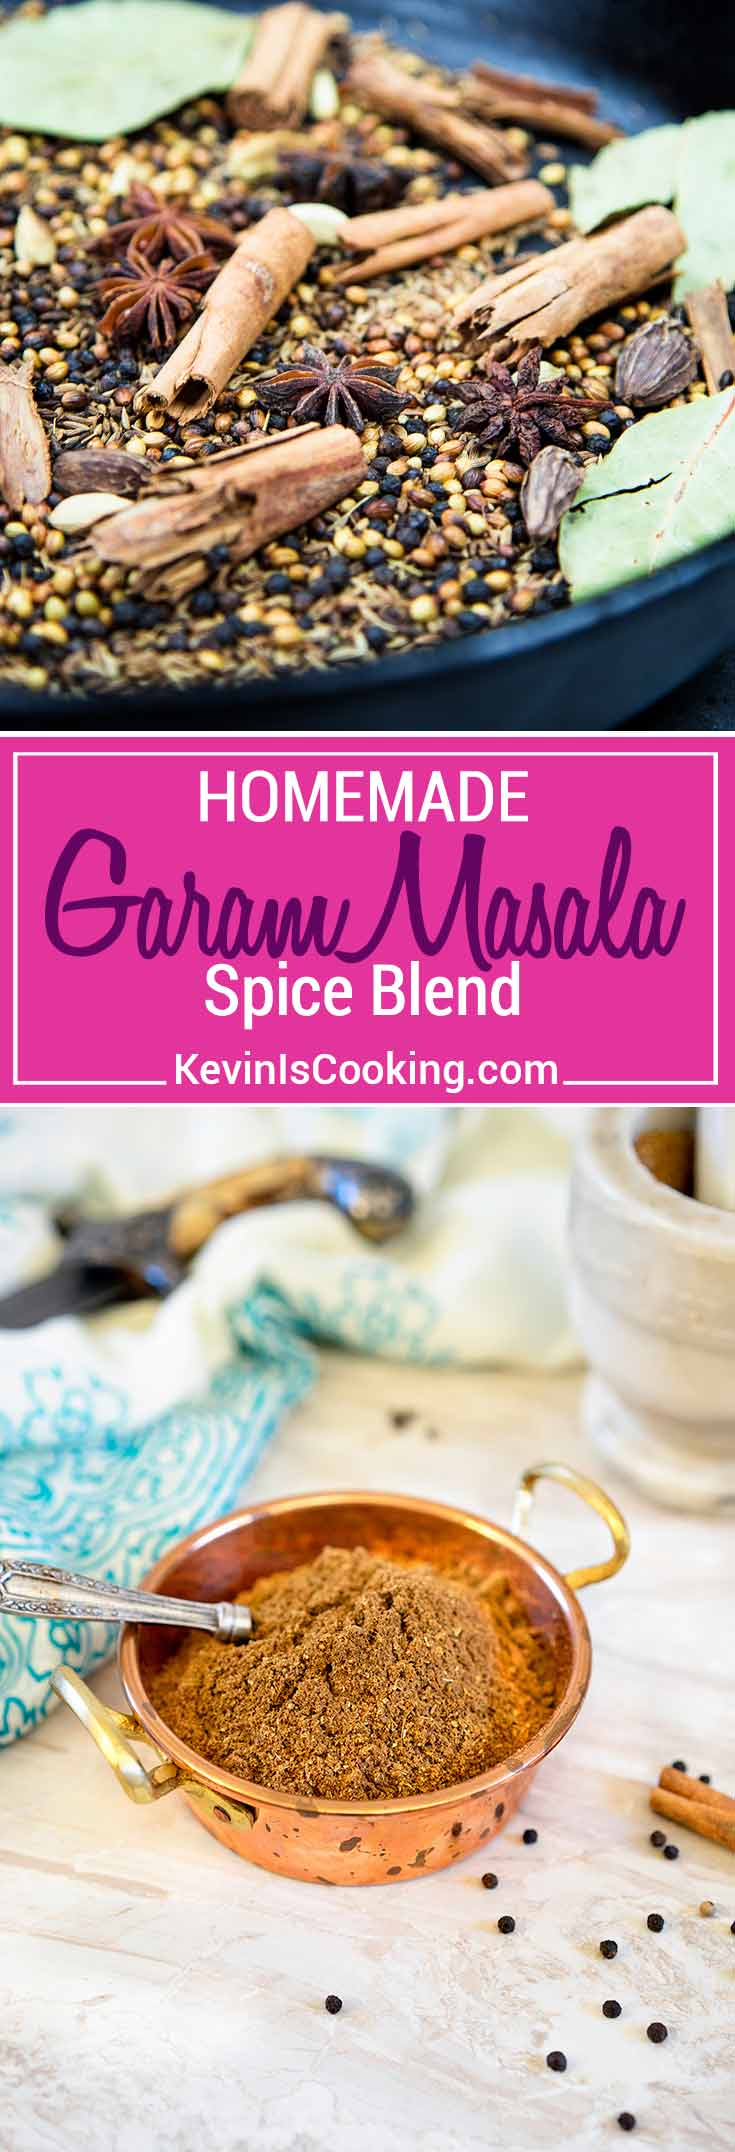 This Indian Garam Masala Spice Blendis an exotic mix of warm spices. I show you how to make it with most pantry spices or purchased from bin markets.